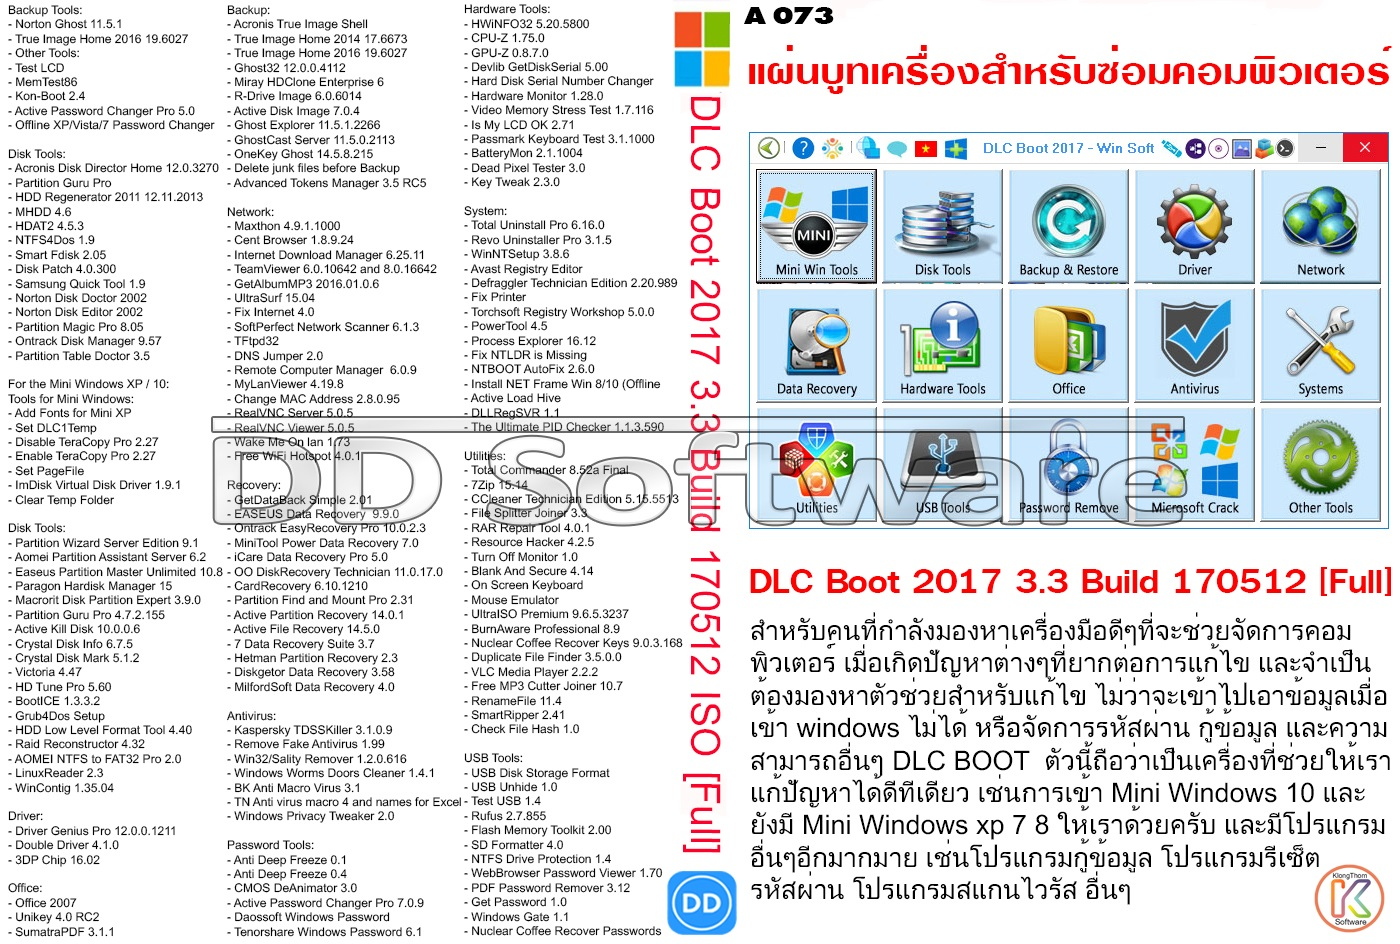 Dlc ultimate boot 2017 iso download | RMPrepUSB, Easy2Boot